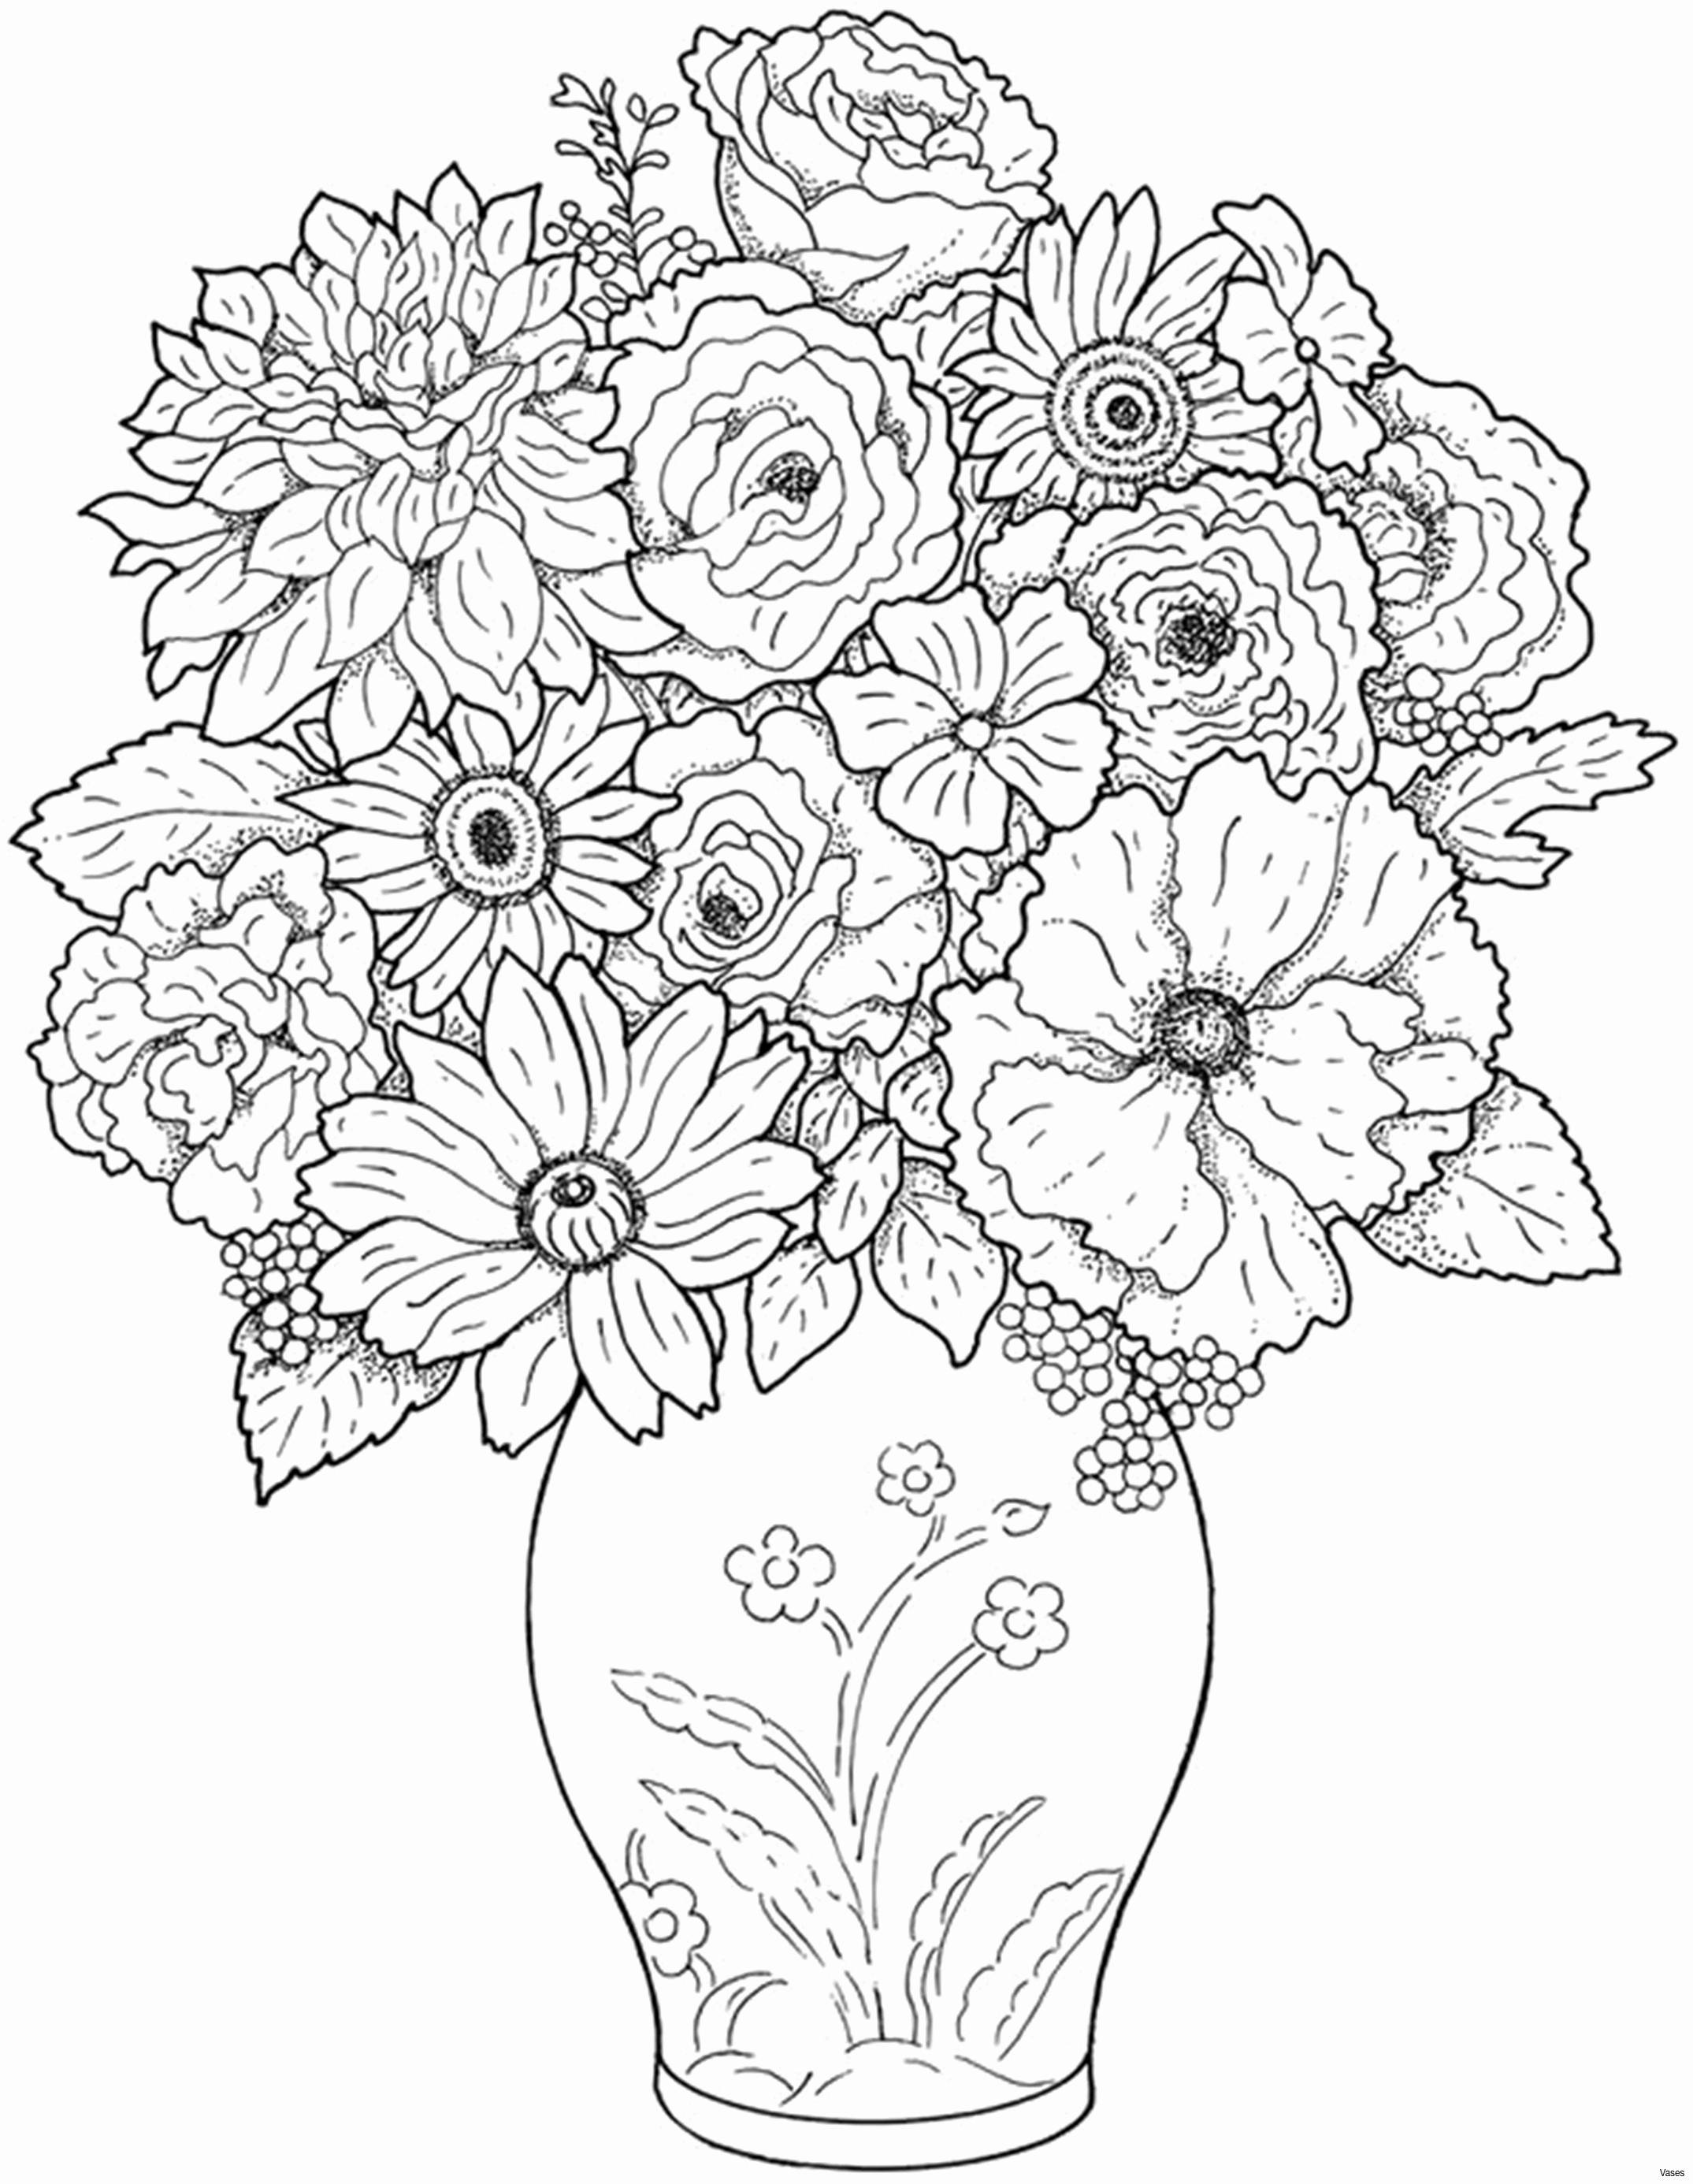 kitchen sponges fresh cool vases flower vase coloring page pages flowers in a top i 0d of kitchen sponges